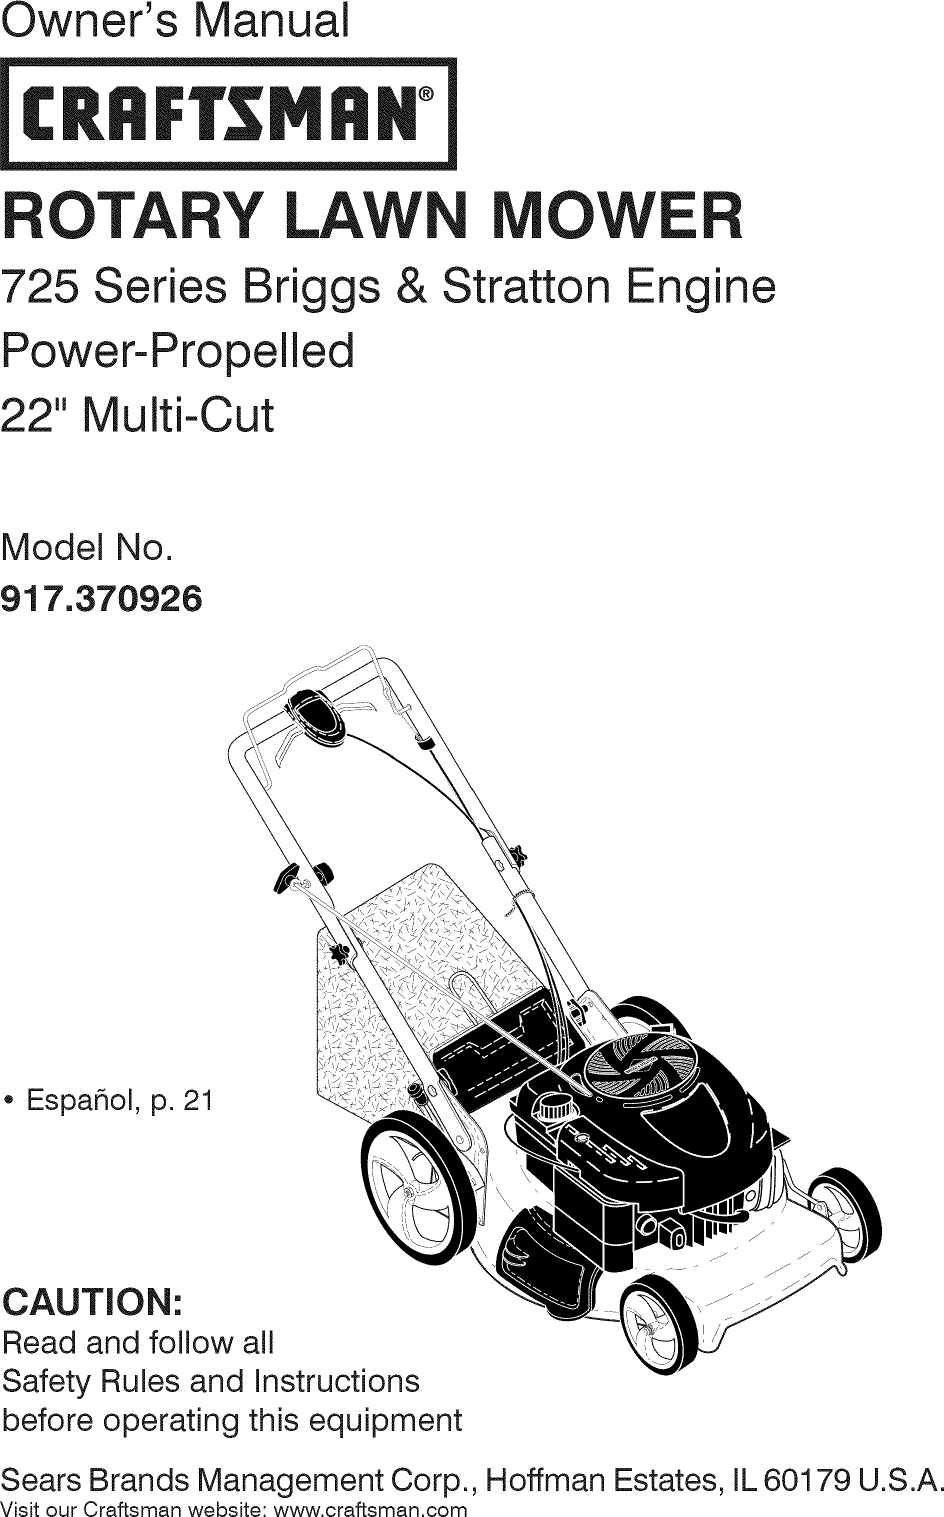 Craftsman 917370926 1501261L User Manual LAWN MOWER